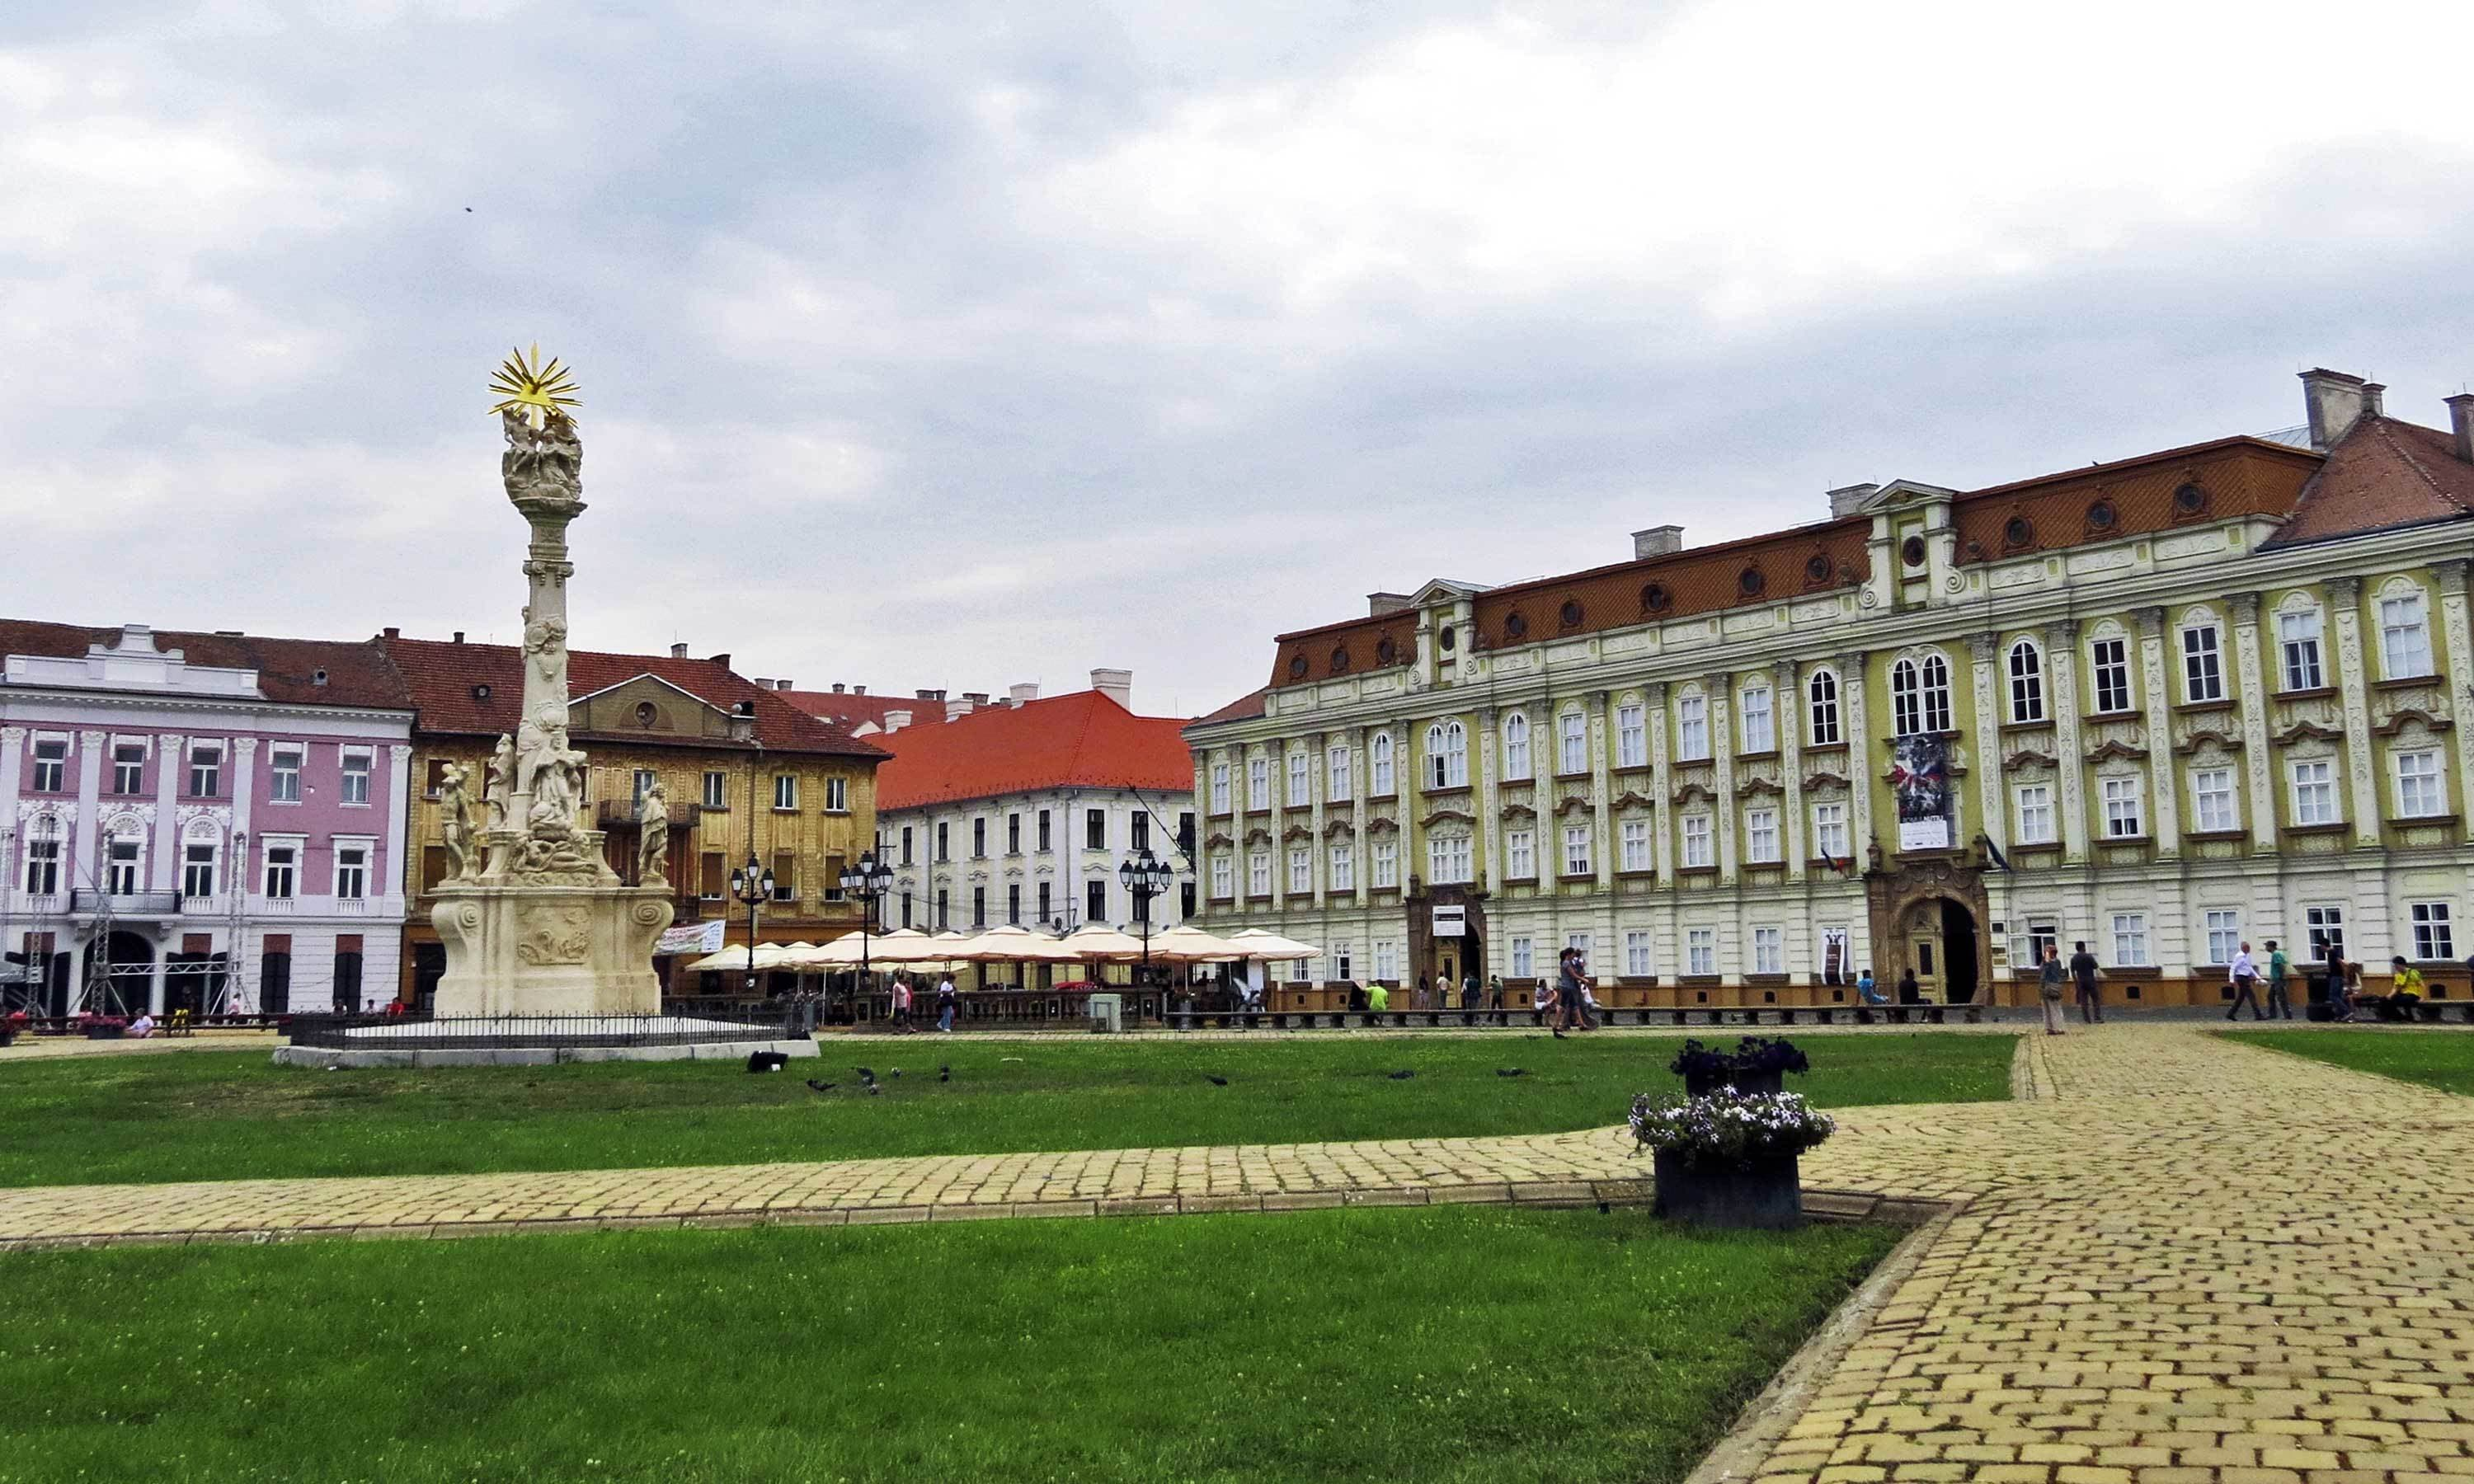 Union Square in modern-day Timisoara. - Photo by Urooj Qureshi